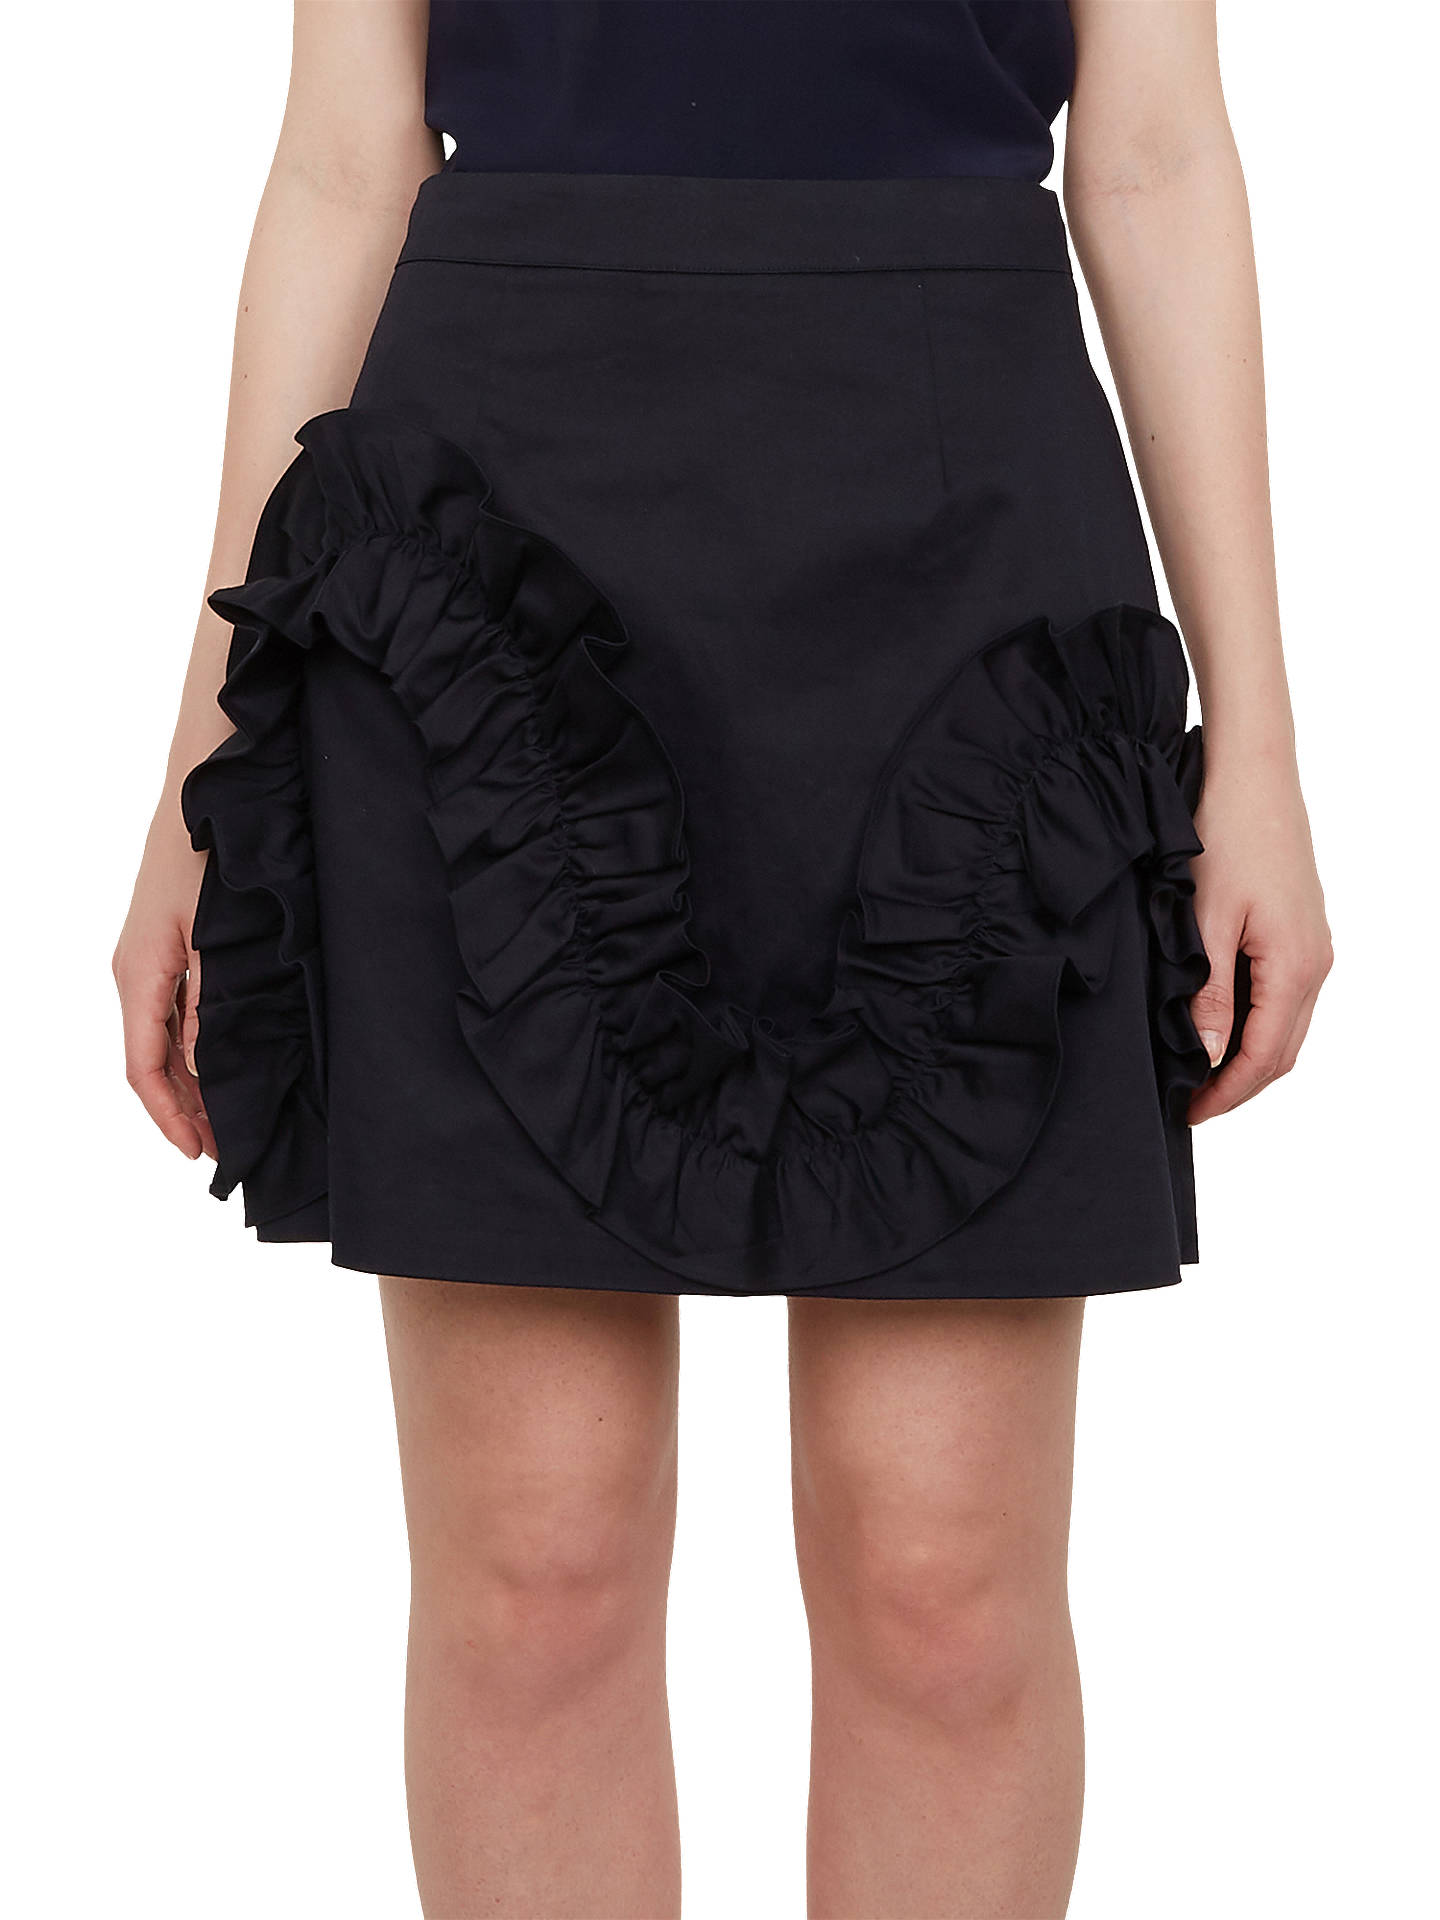 BuyTed Baker Suzanah Mini Skirt, , Navy, 0 Online at johnlewis.com